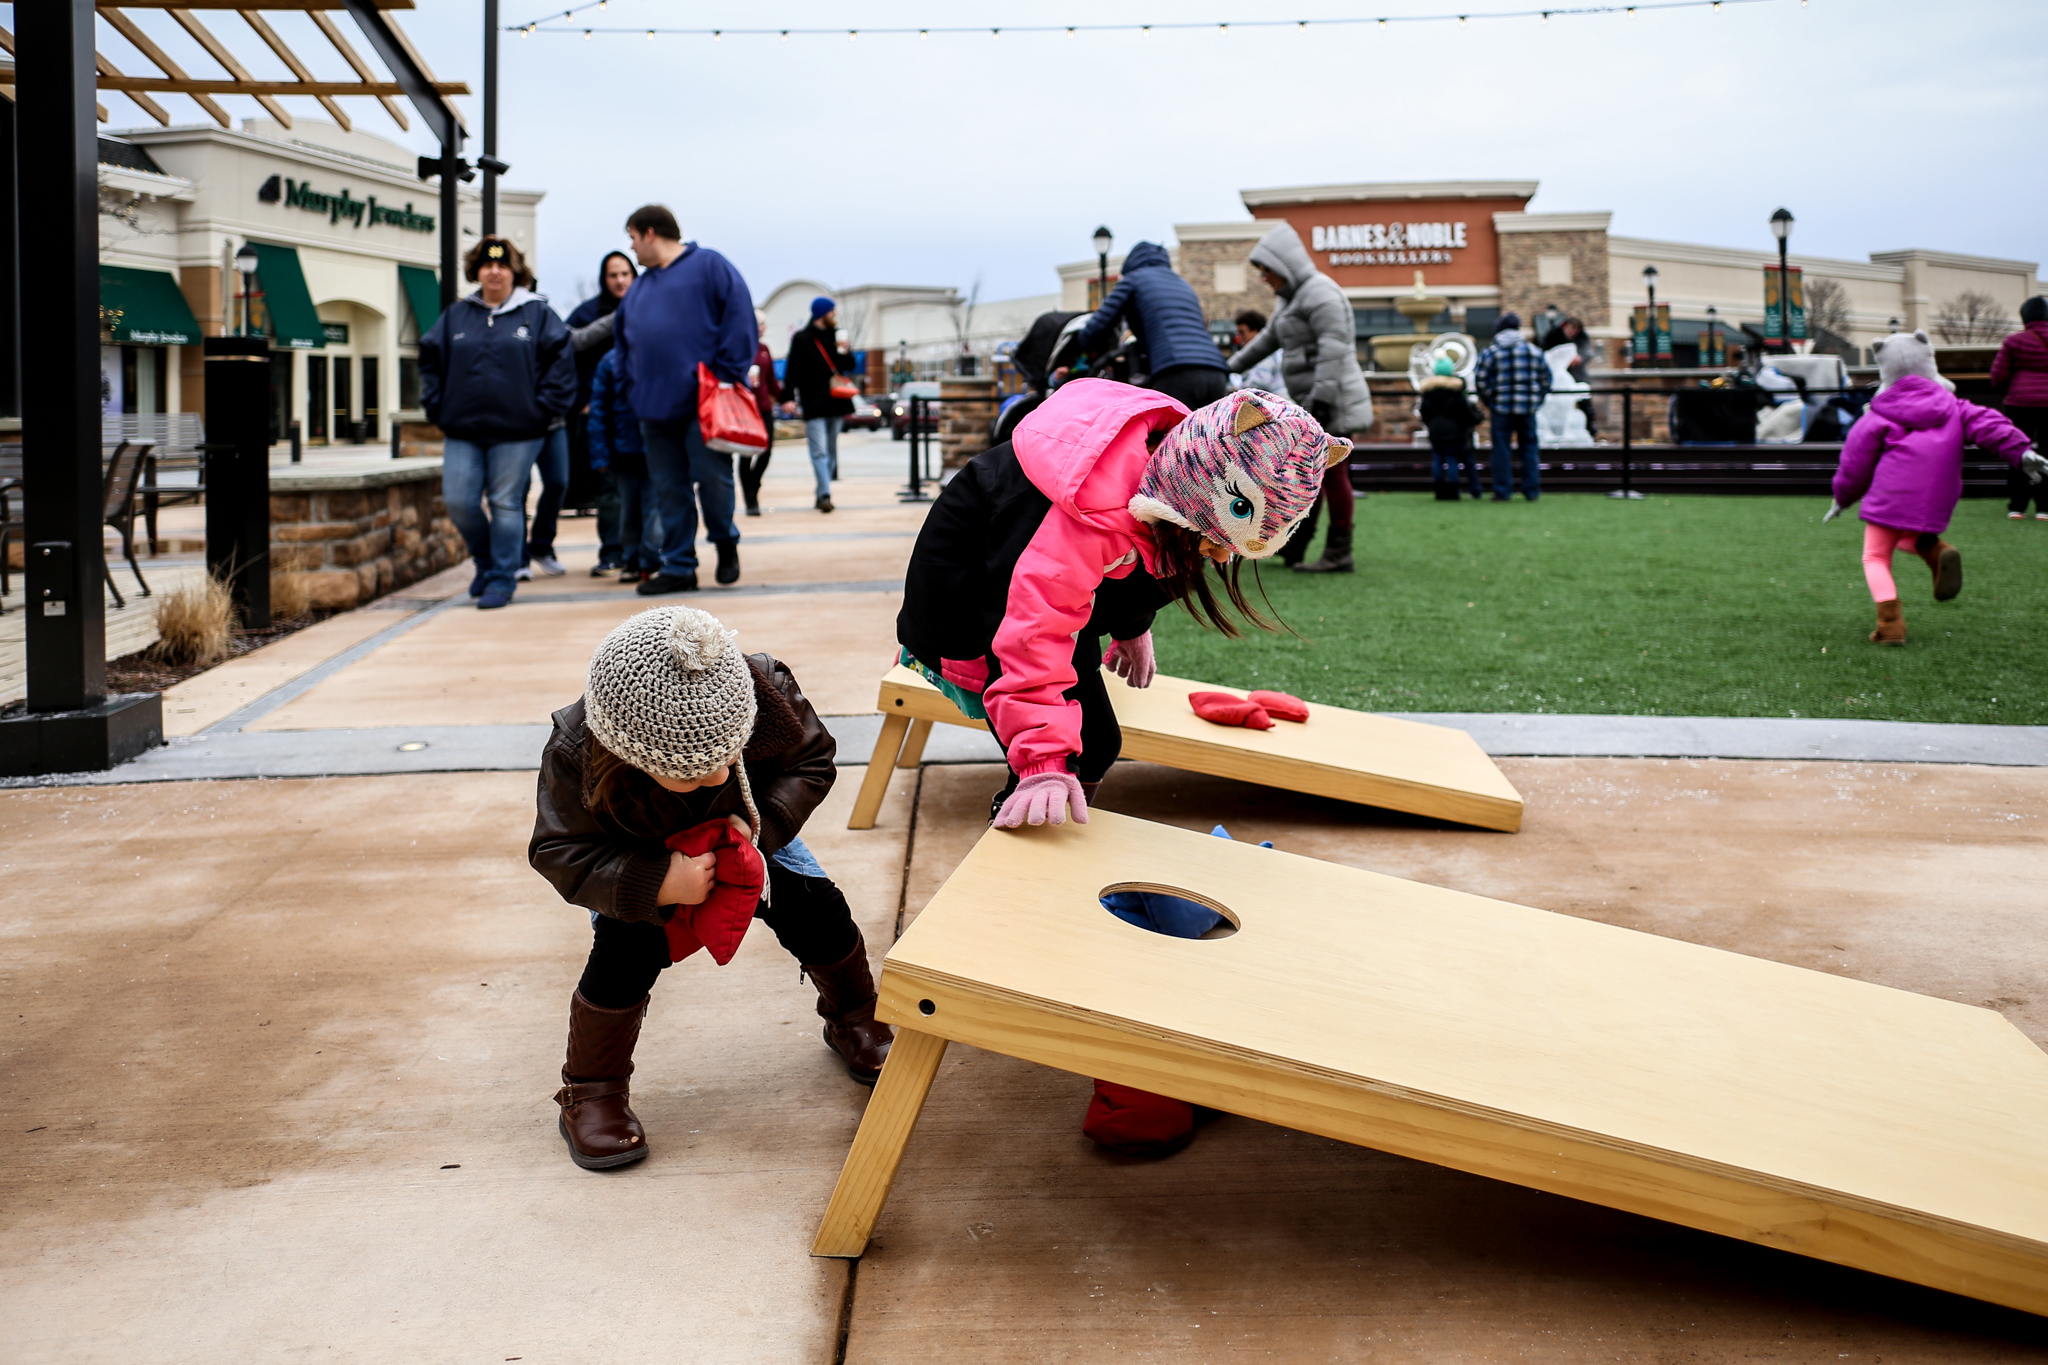 Little girls playing cornhole during the fire and ice festival at The Shops at Saucon Valley in Lehigh Valley, PA.